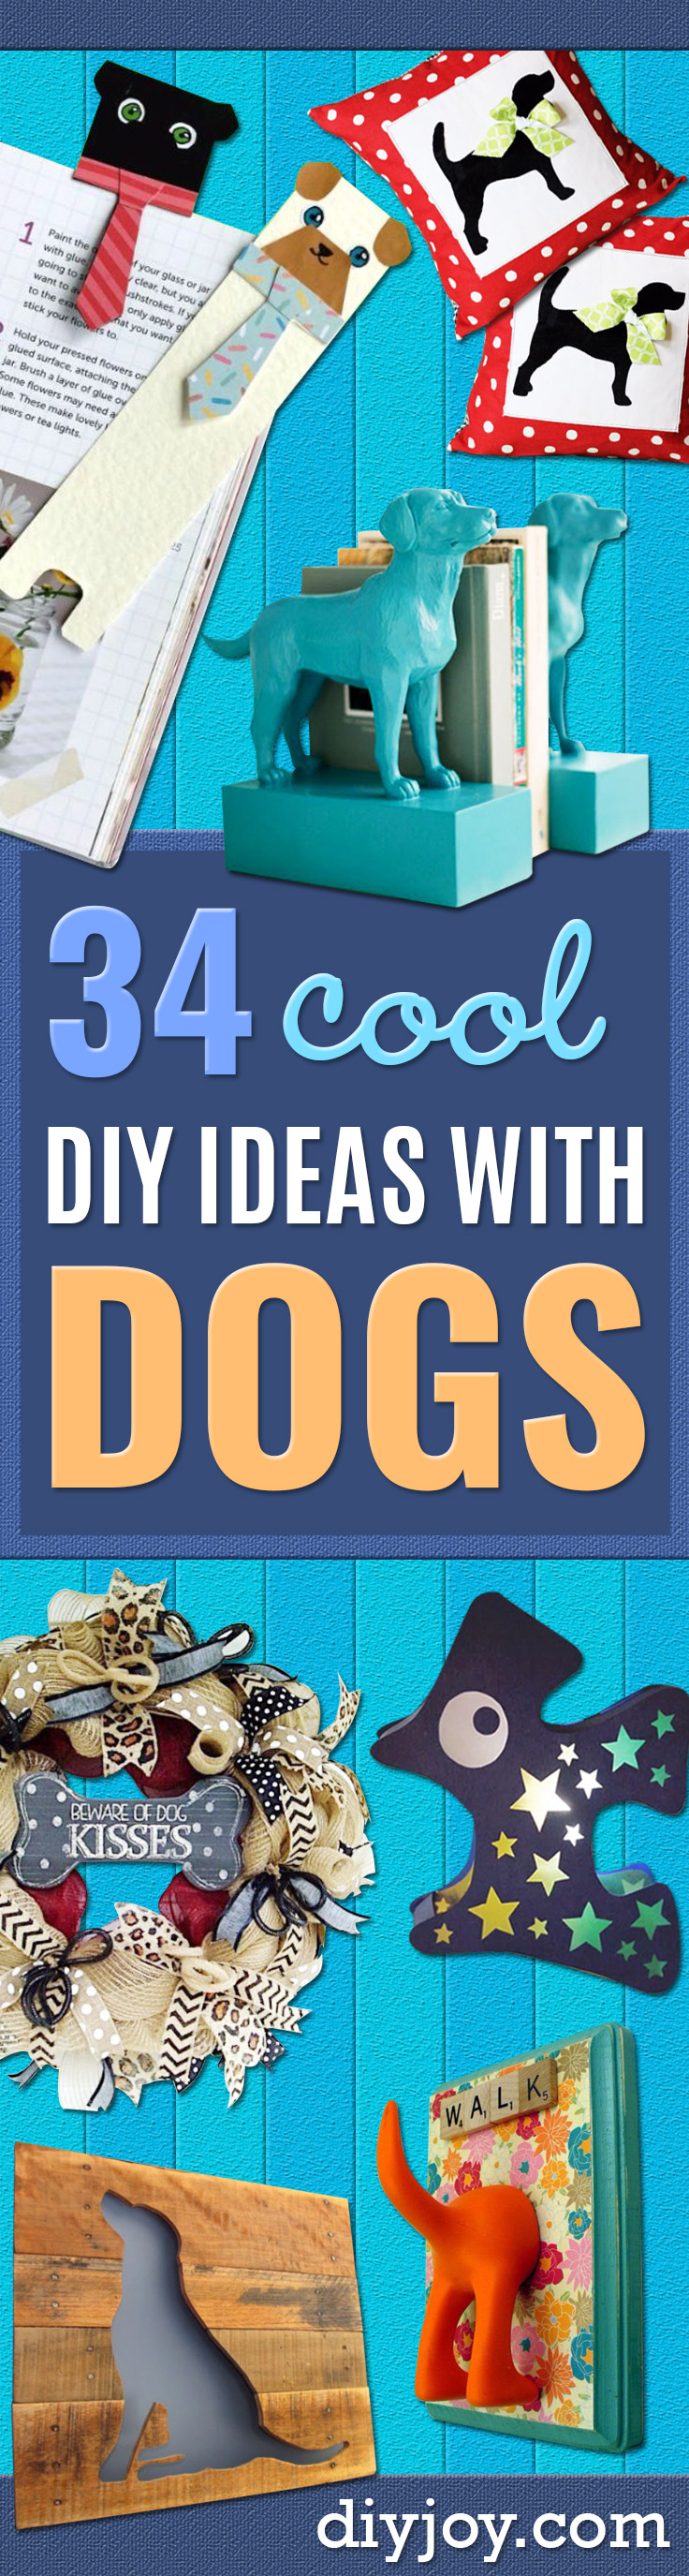 DIY Ideas With Dogs - Cute and Easy DIY Projects for Dog Lovers - Wall and Home Decor Projects, Things To Make and Sell on Etsy - Quick Gifts to Make for Friends Who Have Puppies and Doggies - Homemade No Sew Projects- Fun Jewelry, Cool Clothes and Accessories http://diyjoy.com/diy-ideas-dogs